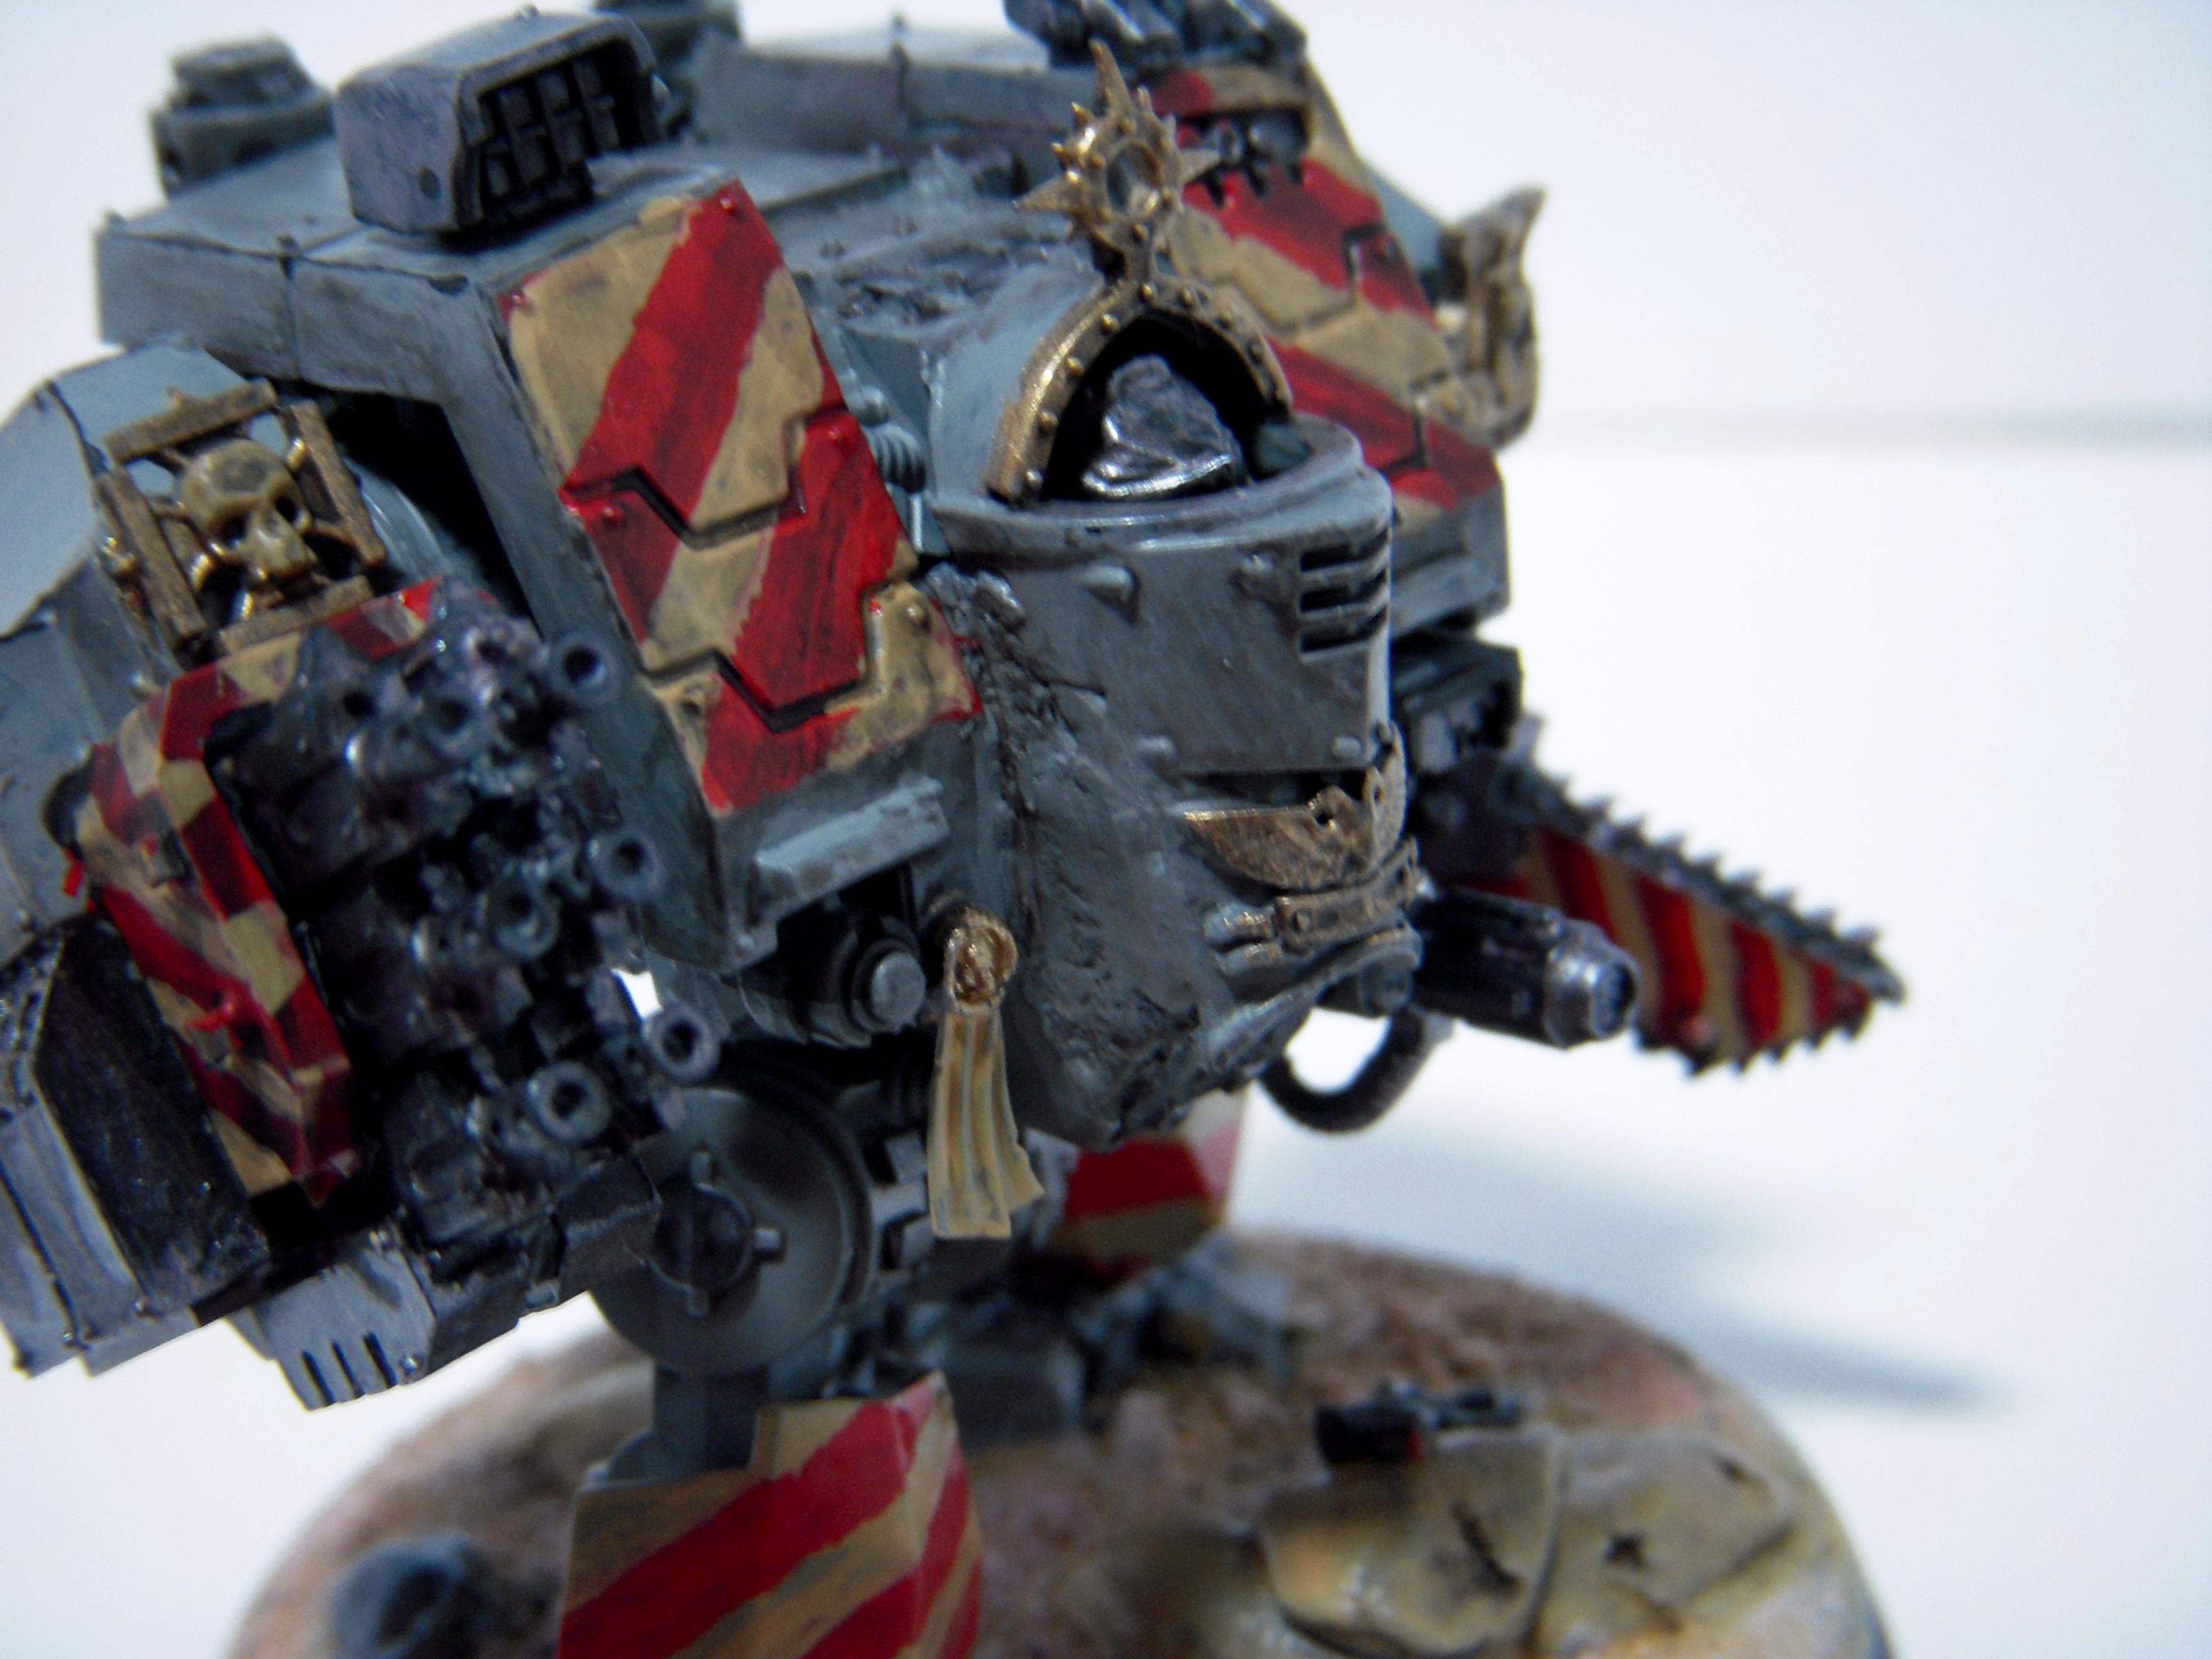 Dreadnought, Forge World, Ironclad, Space Marines, Warhammer 40,000